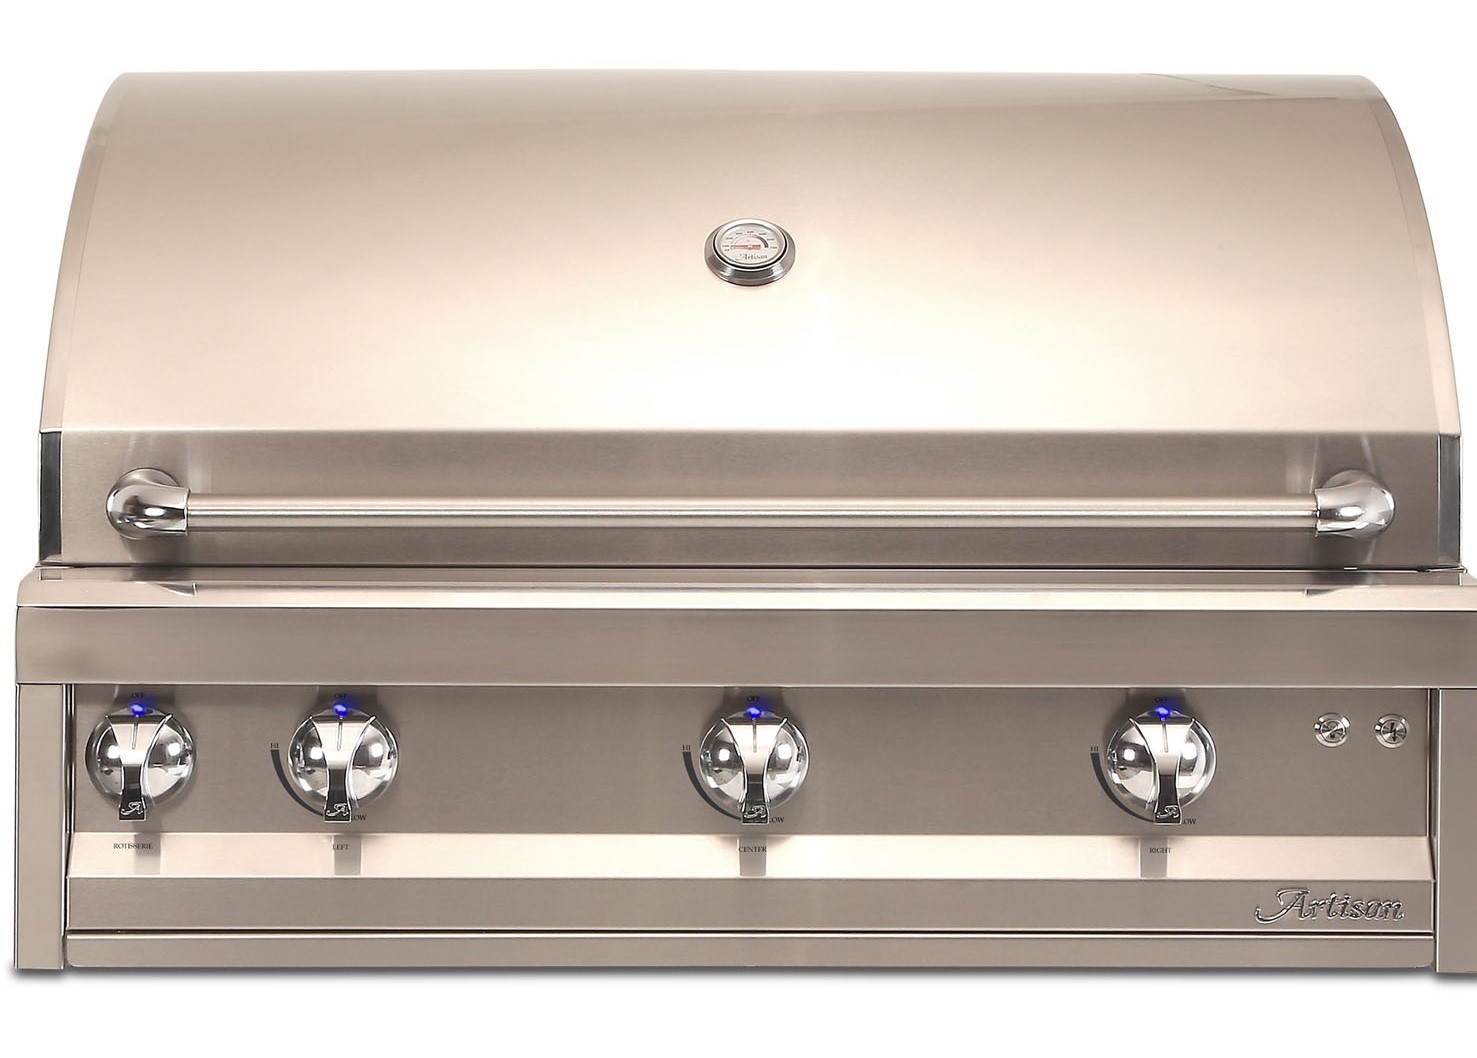 "Artisan by Alfresco Professional 36"" Built-in Grill"